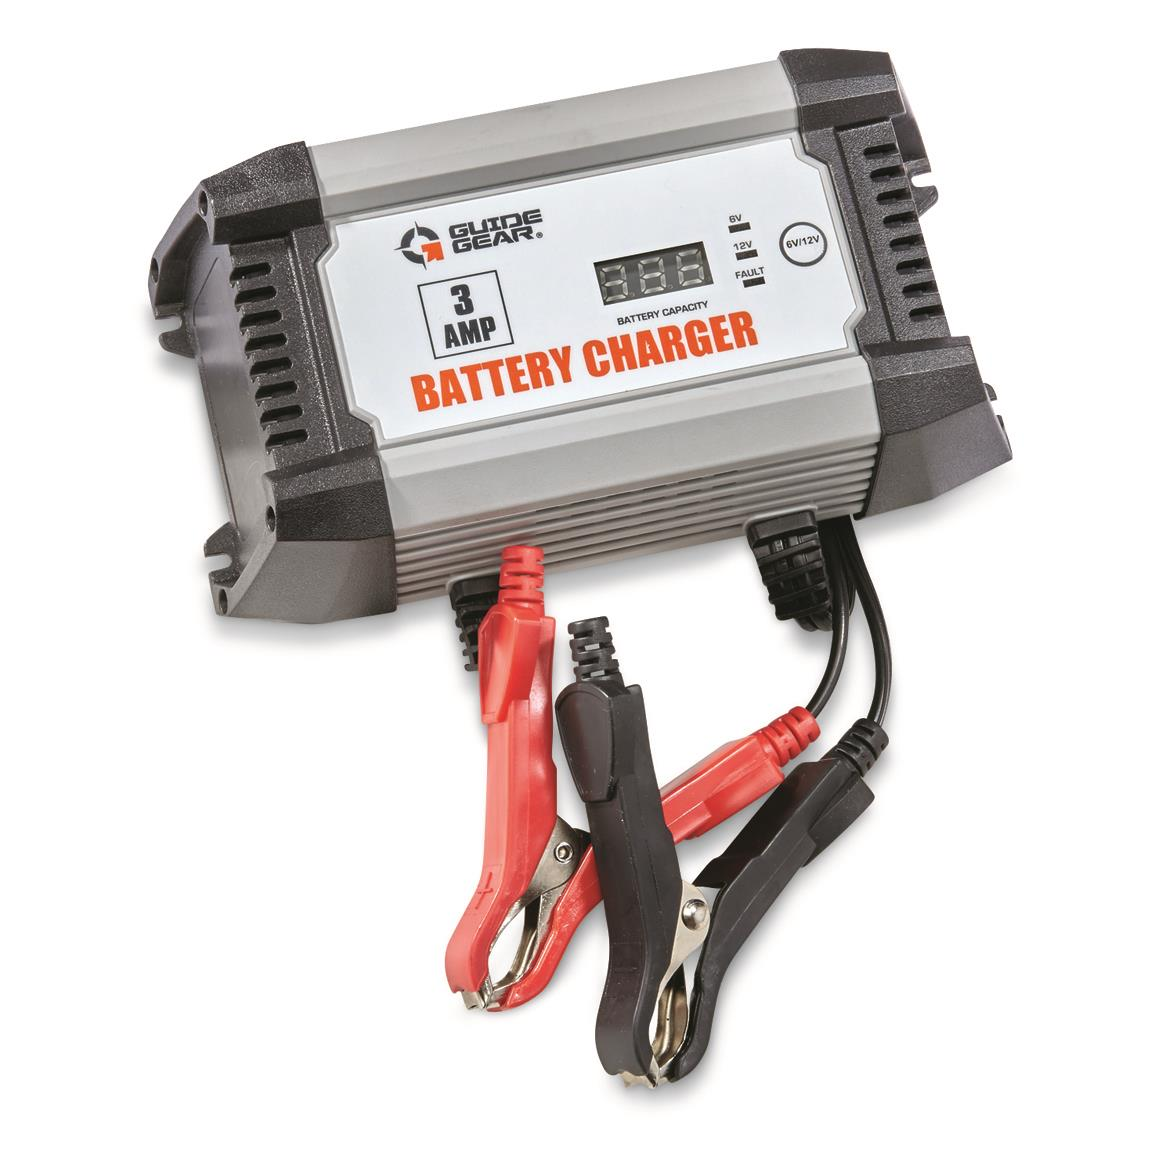 Guide Gear 3A 6V/12V Smart Battery Charger